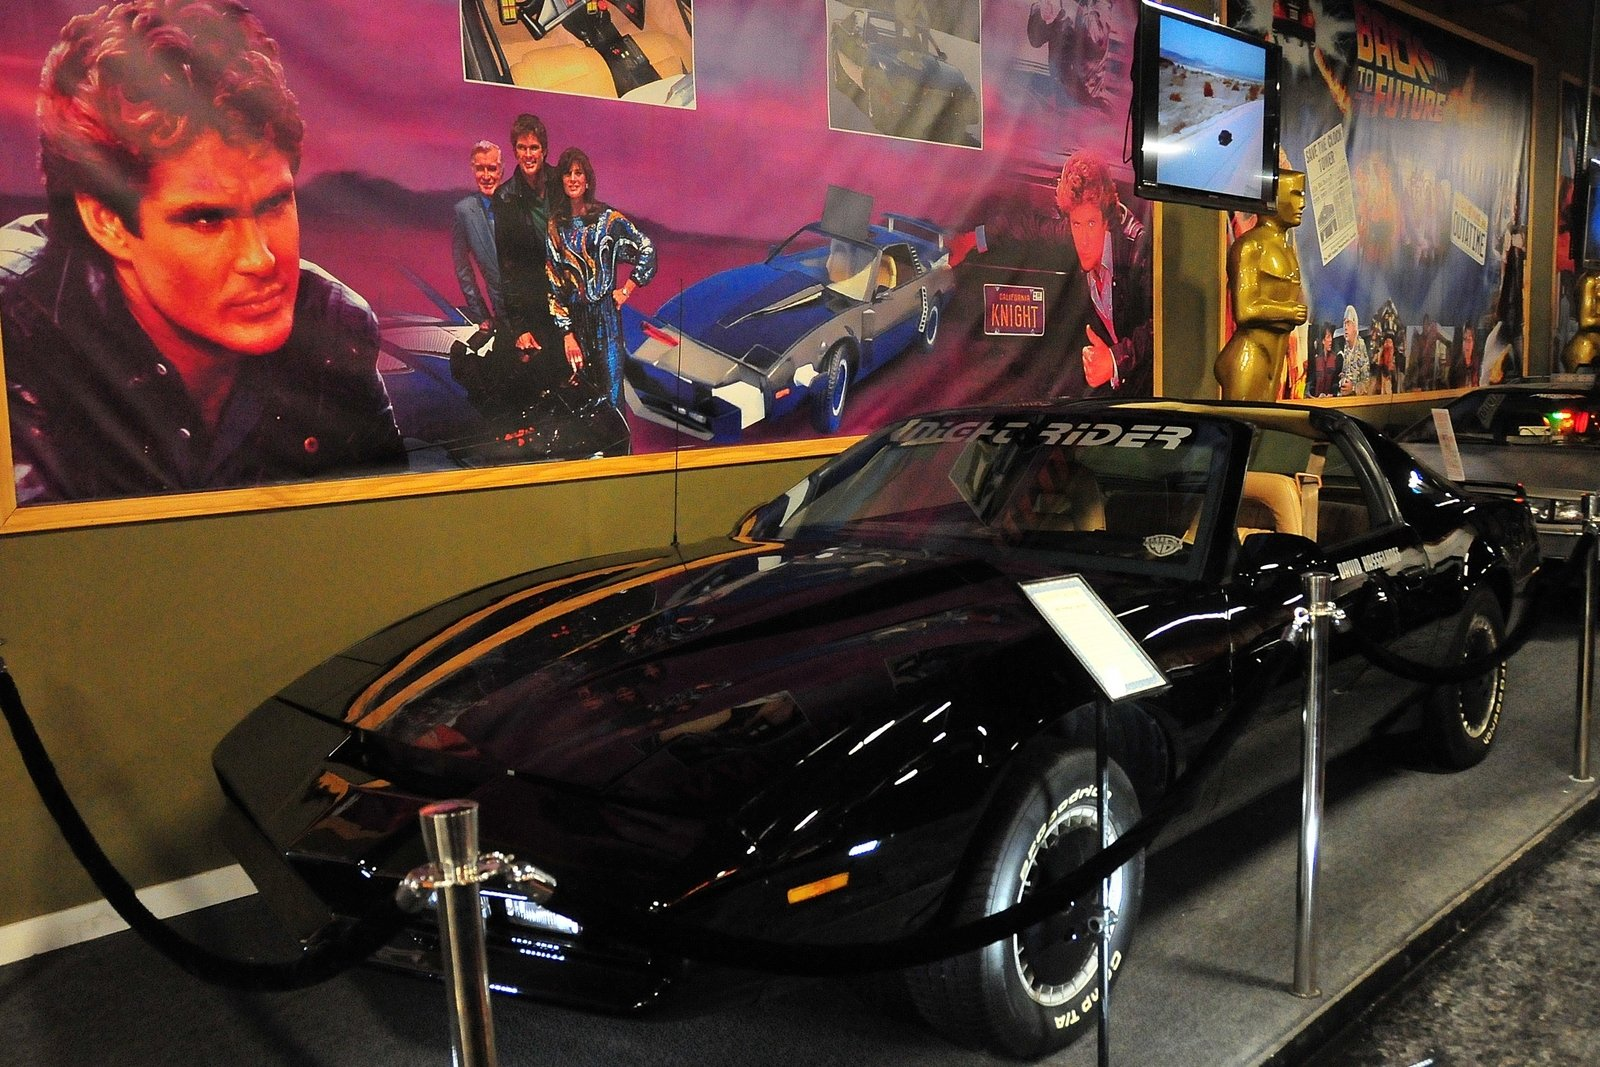 rent the Knight Rider car